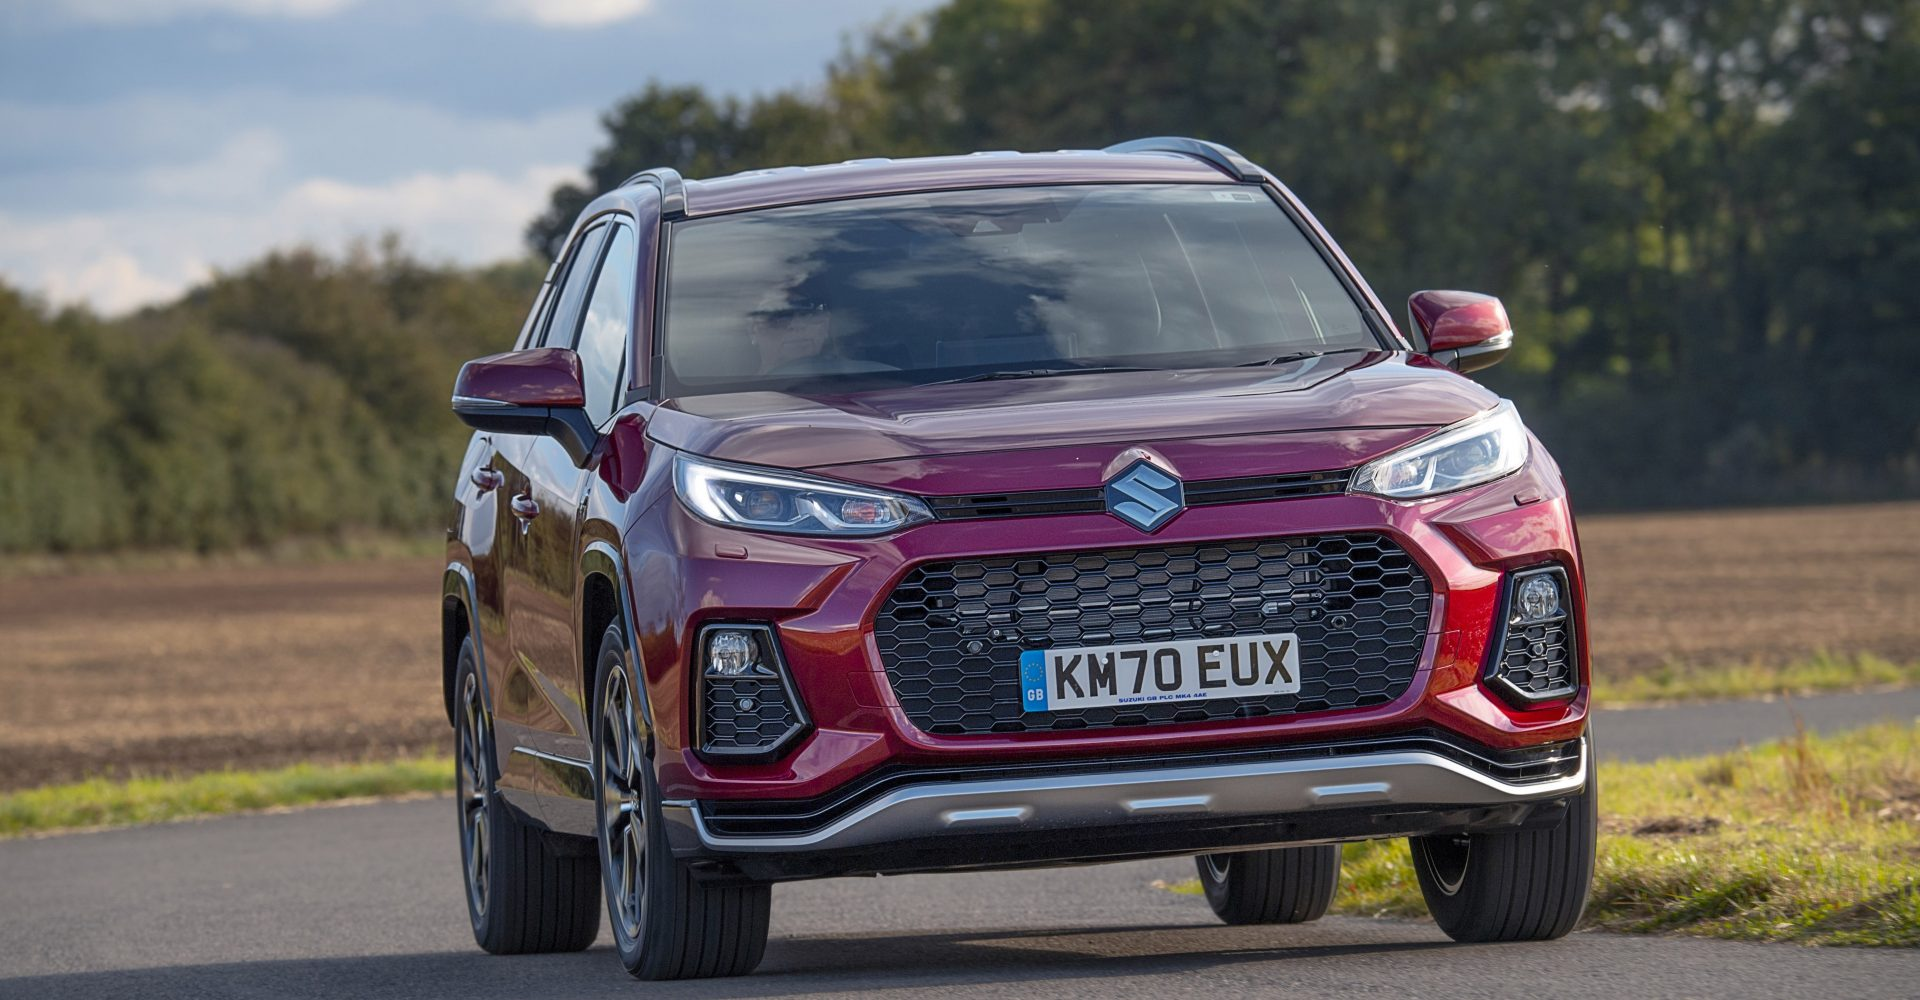 First Drive: The Suzuki Across is a swift and efficient plug-in hybrid SUV